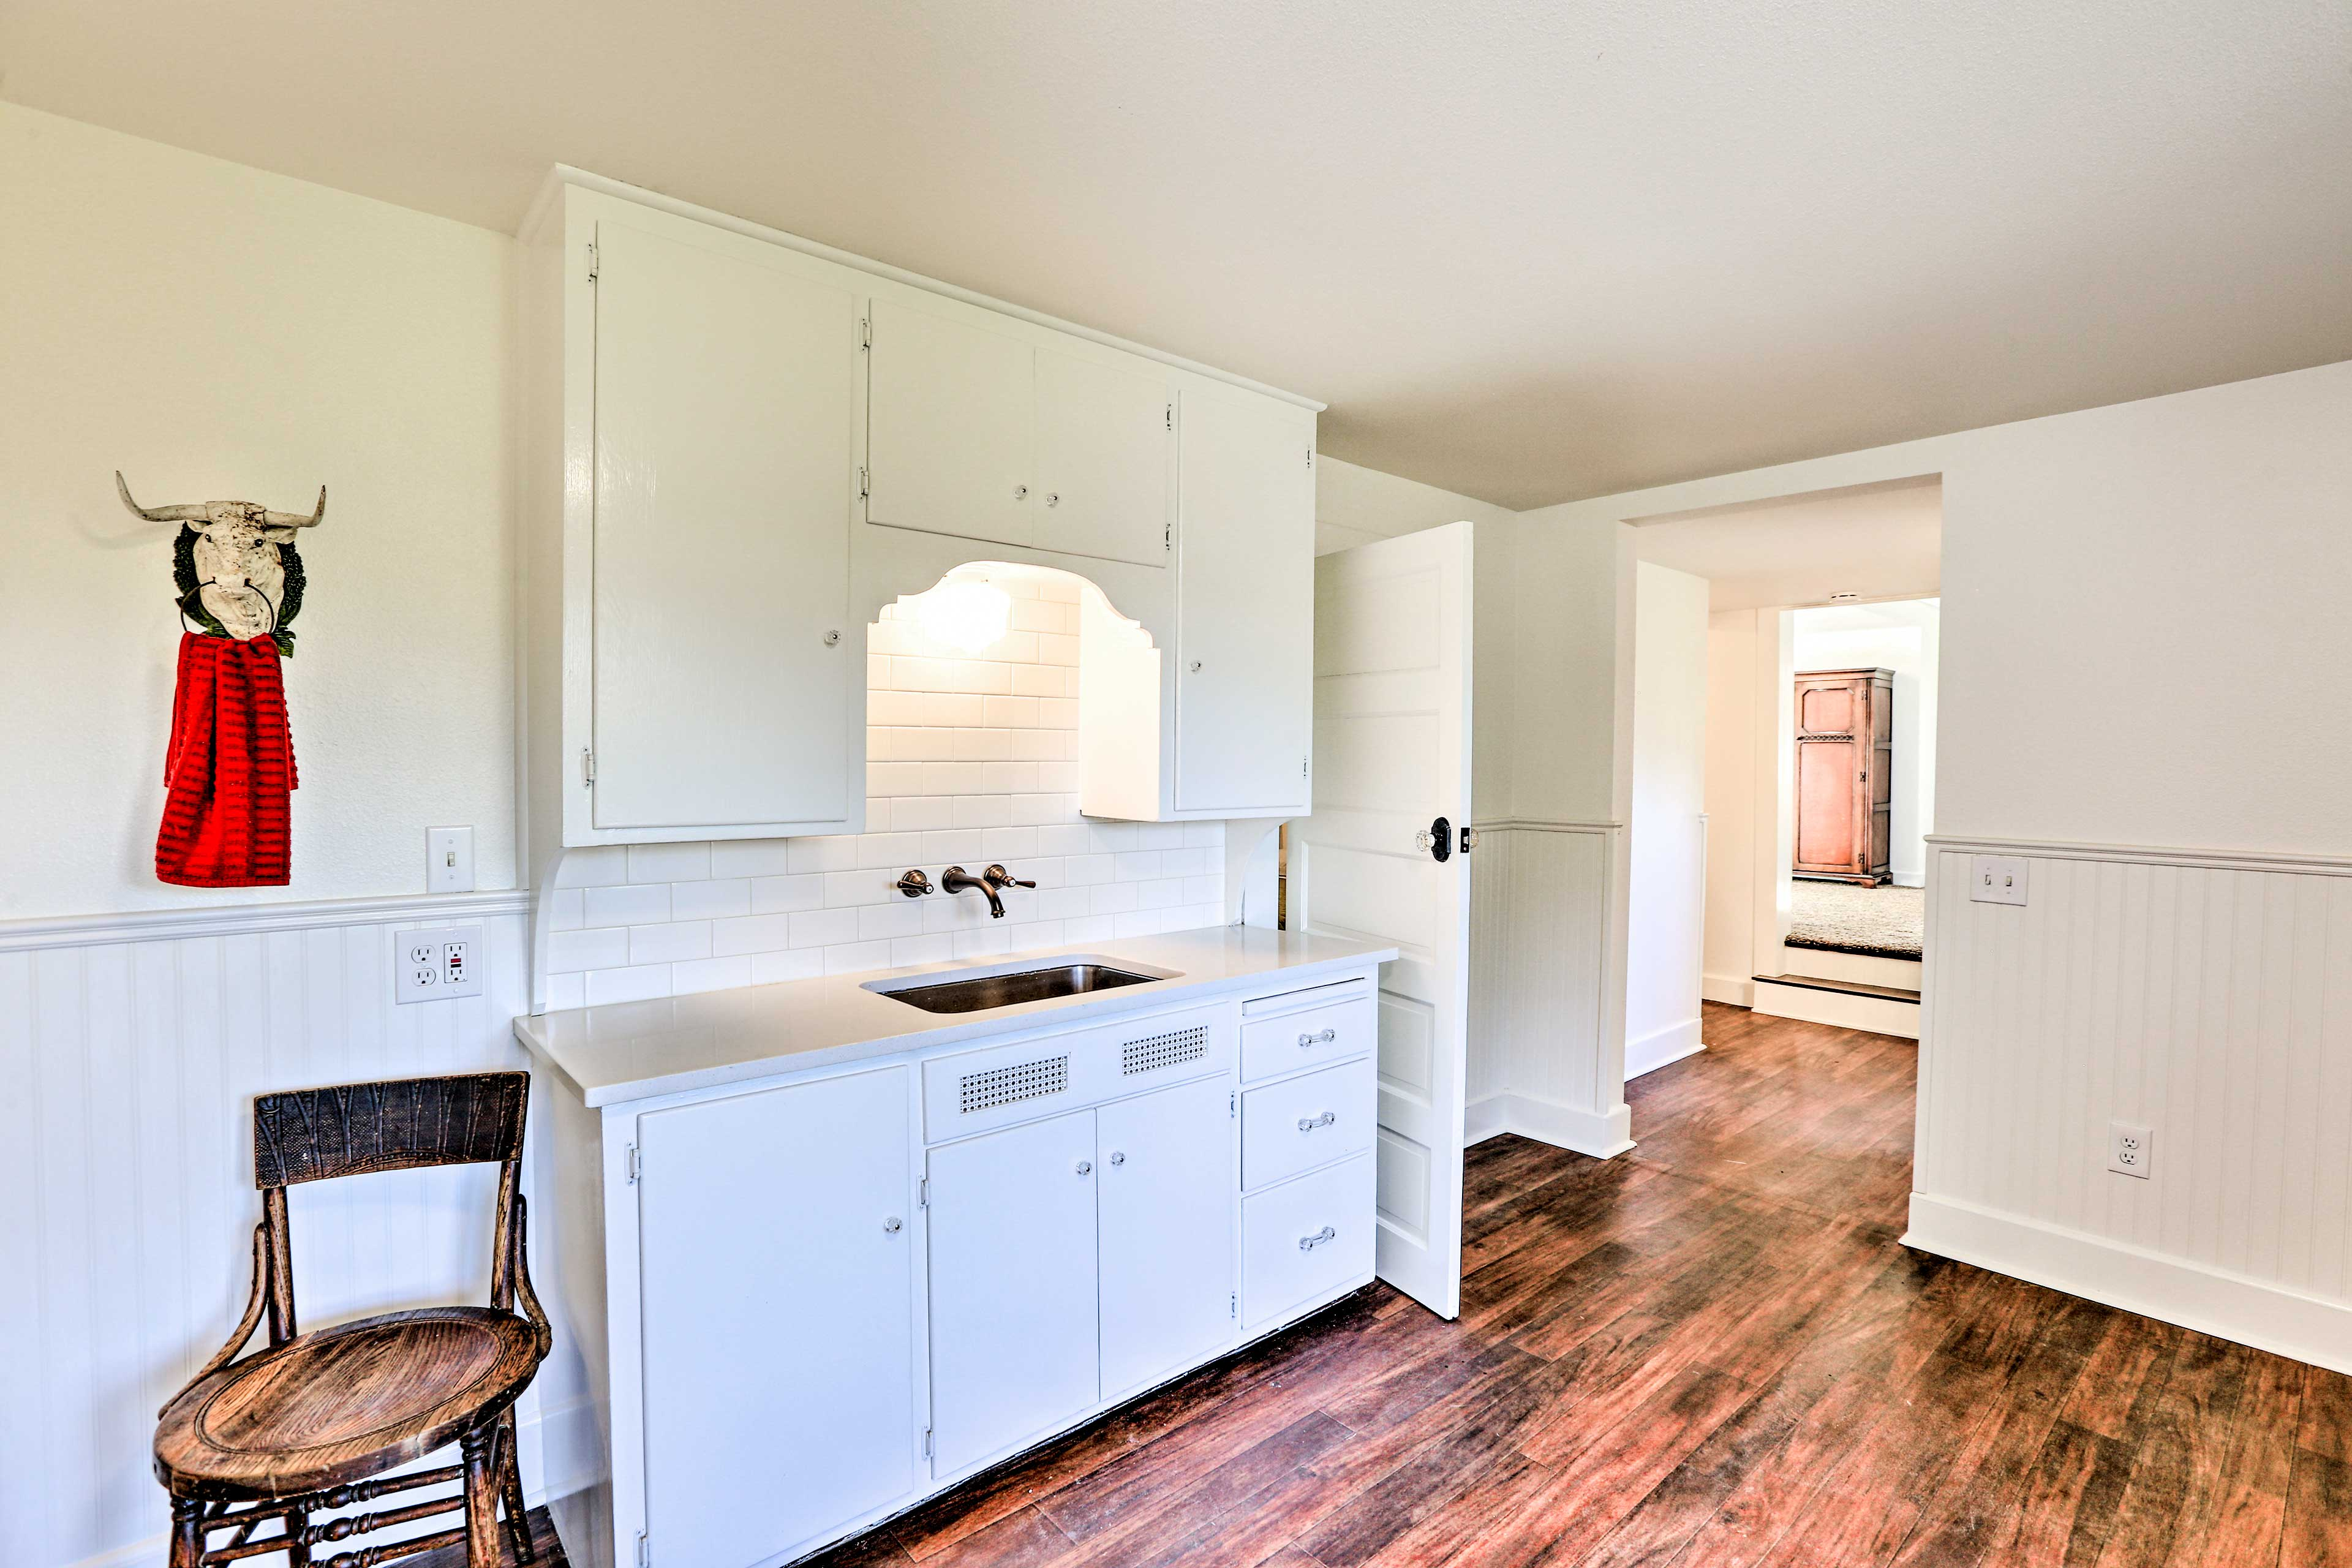 There's ample space for counter space in the full kitchen.